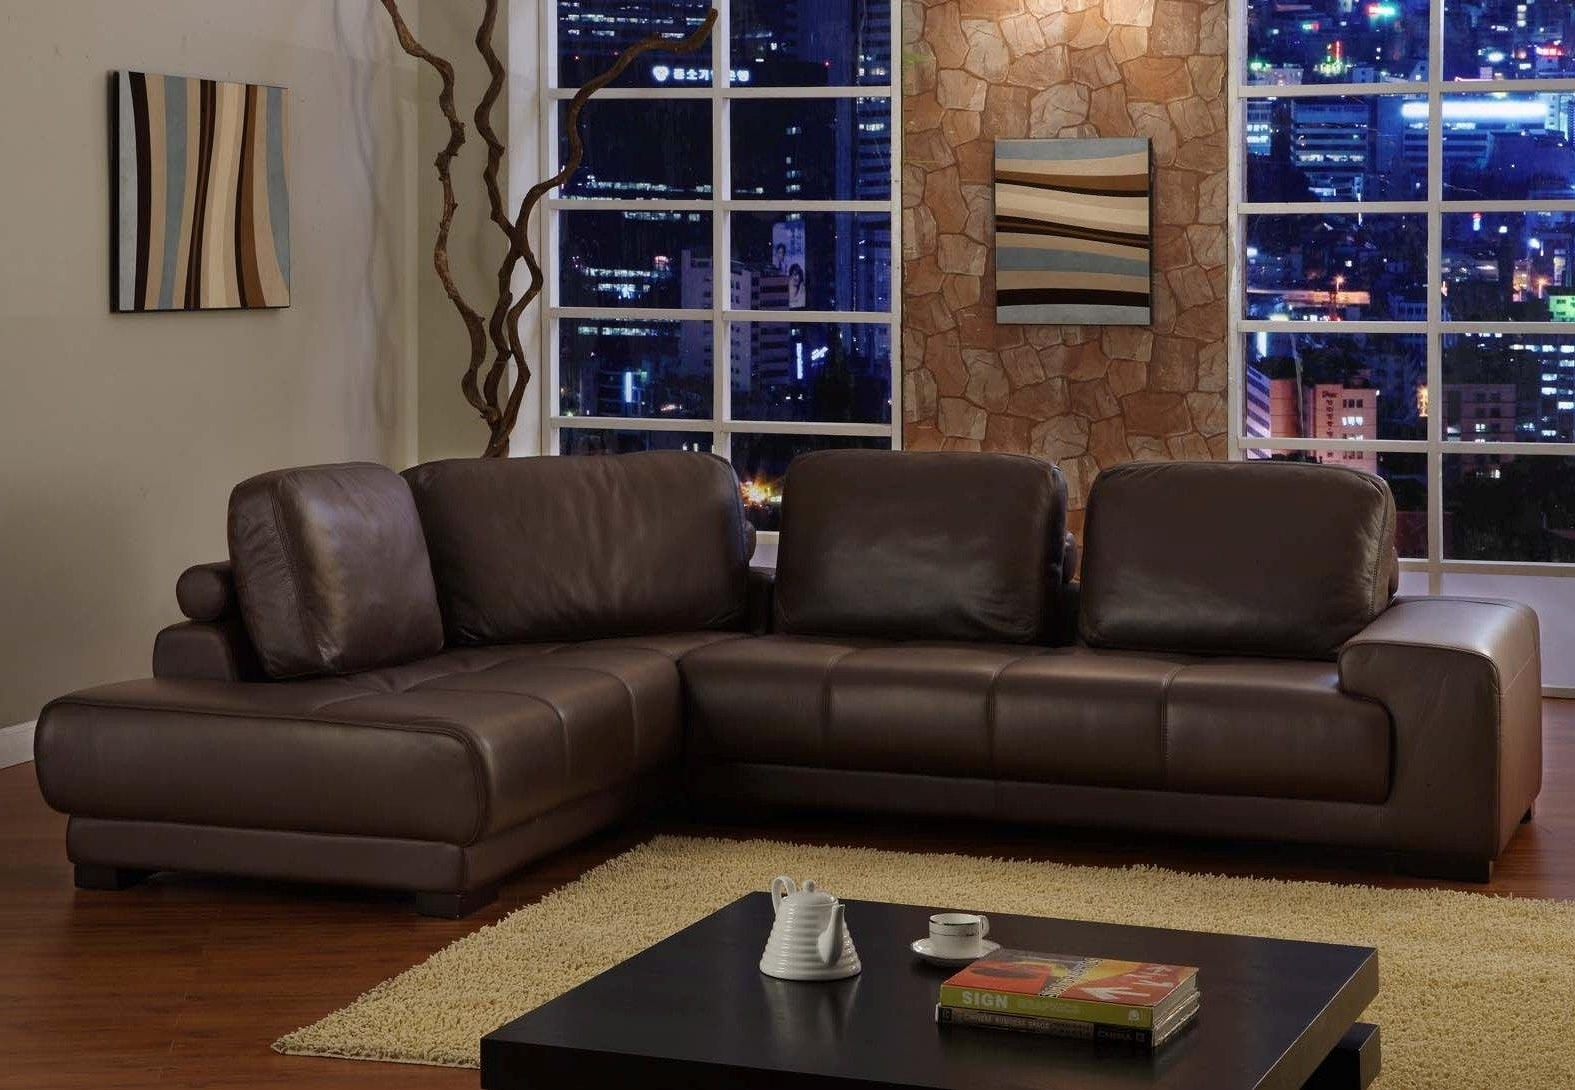 Well Liked Sectional Sofa Clearance: The Best Way To Get High Quality Sofa In With Regard To Clearance Sectional Sofas (View 4 of 15)